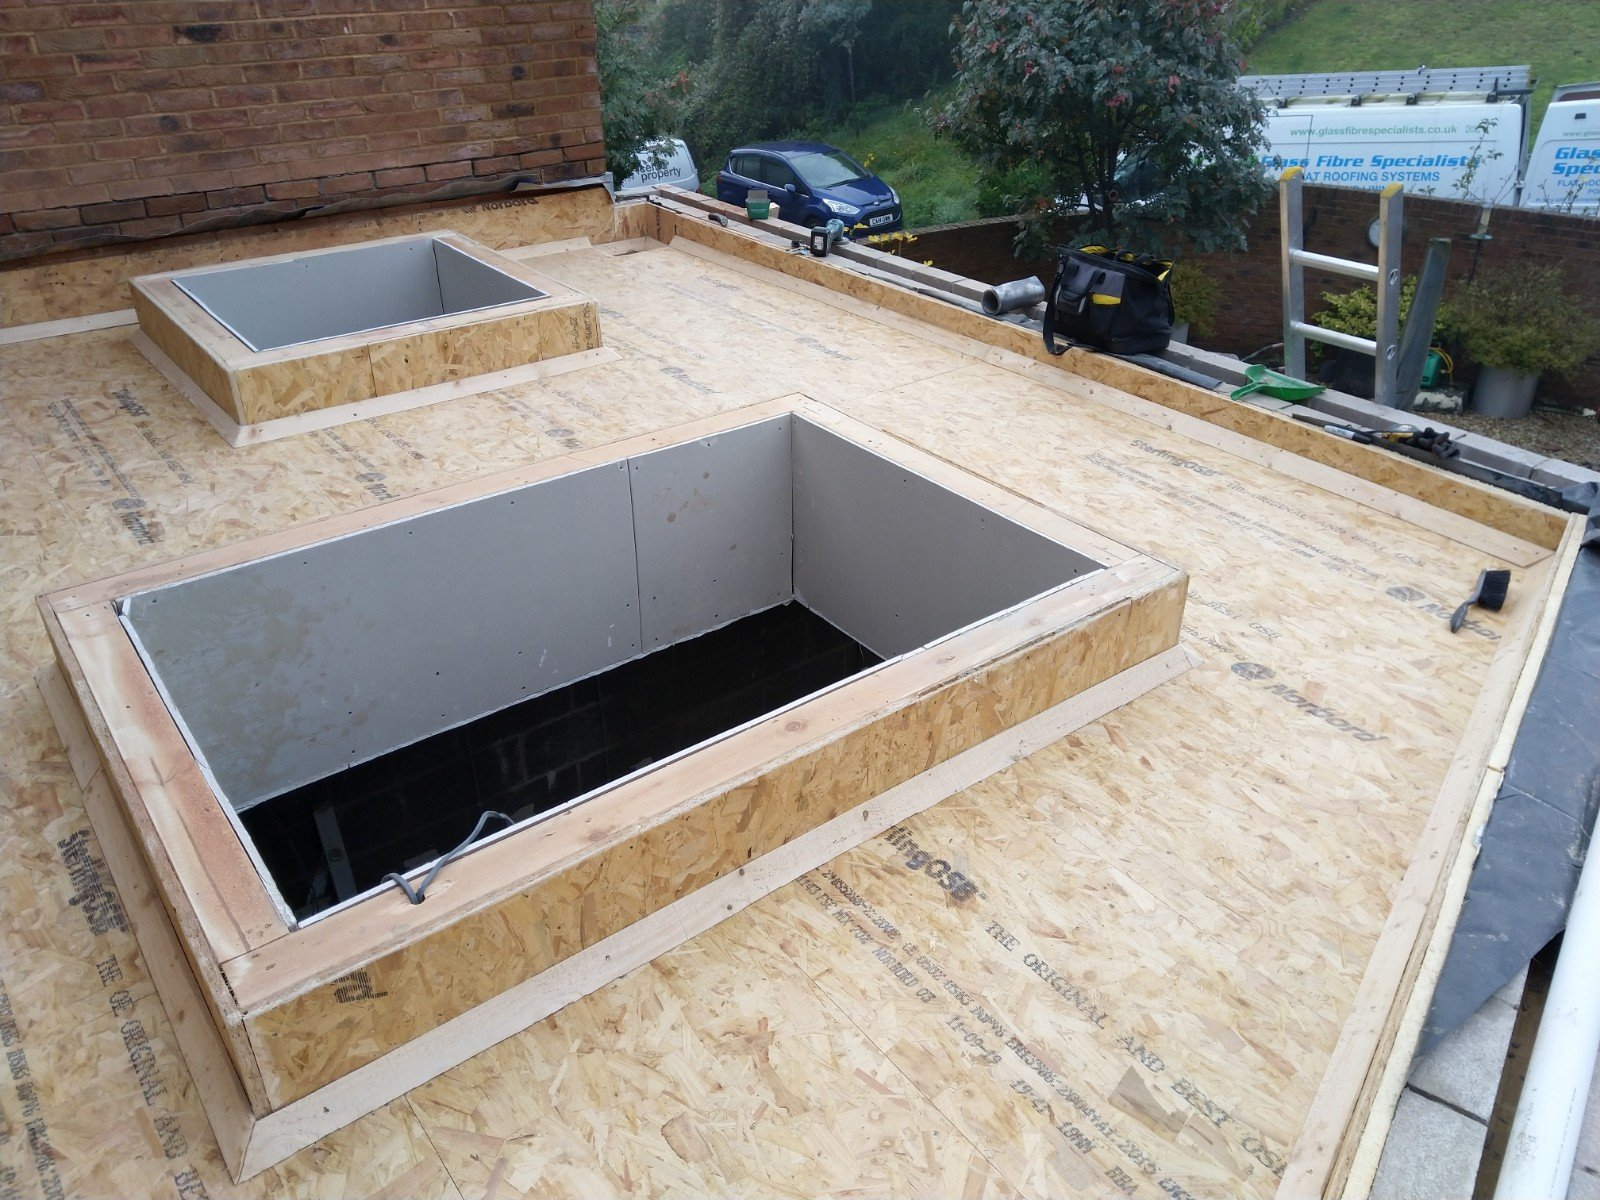 Flat roof in Abergavenny ready for waterproofing.